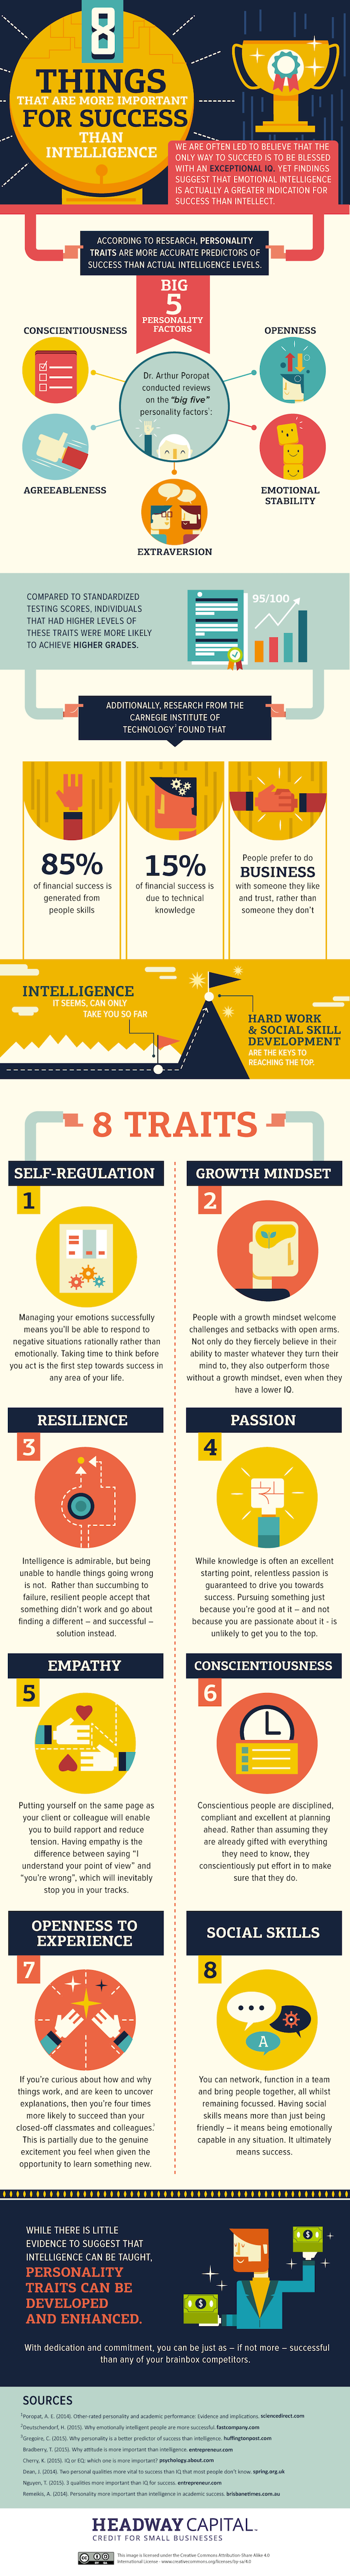 traits that are predictors for success Identification of the central traits is important as they have the power to influence  much behaviour in an individual for example to be successful.